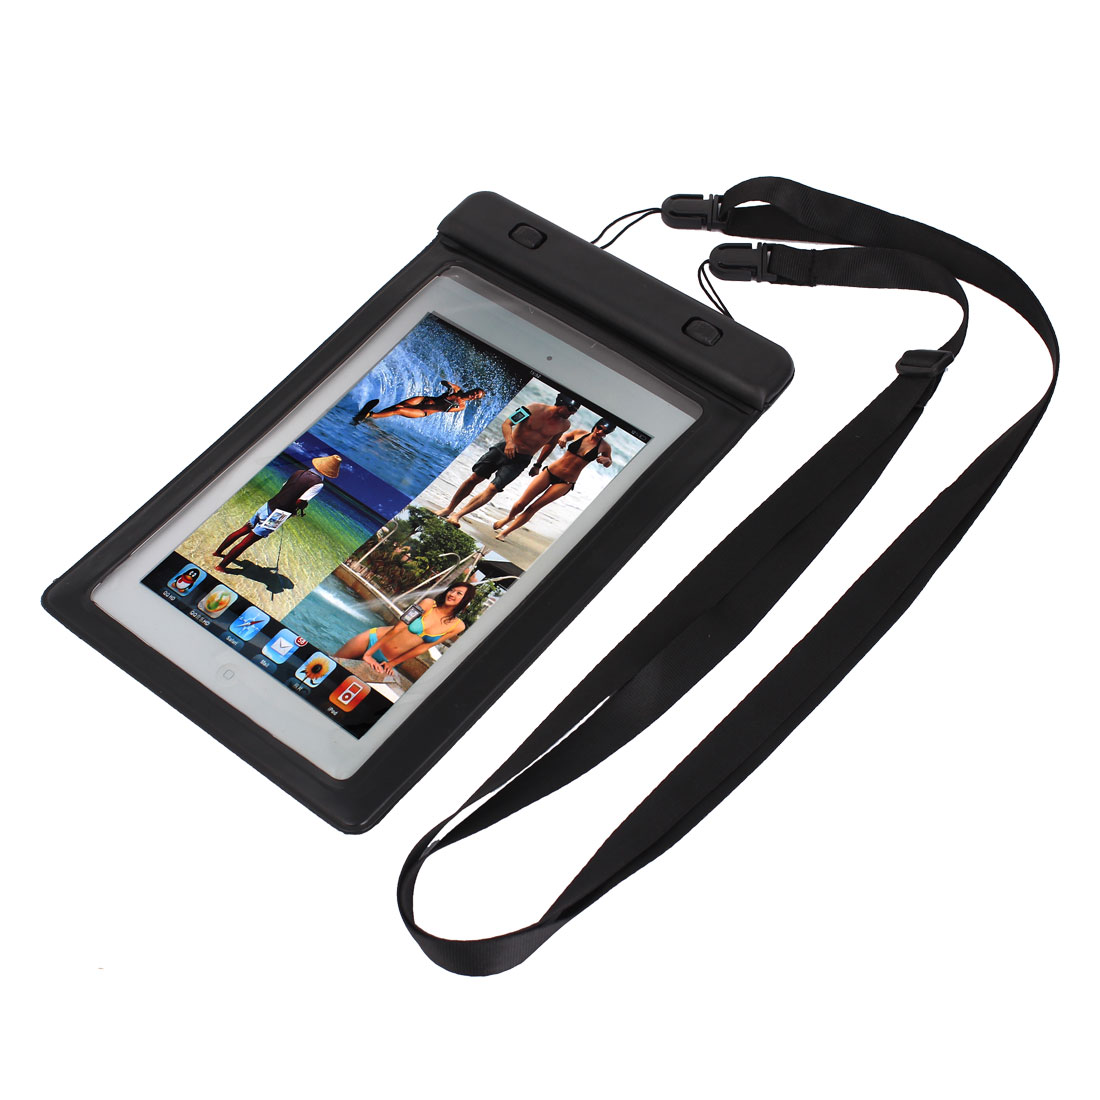 Waterproof Bag Holder Pouch Black for iPad Mini 2 w Hook Strap